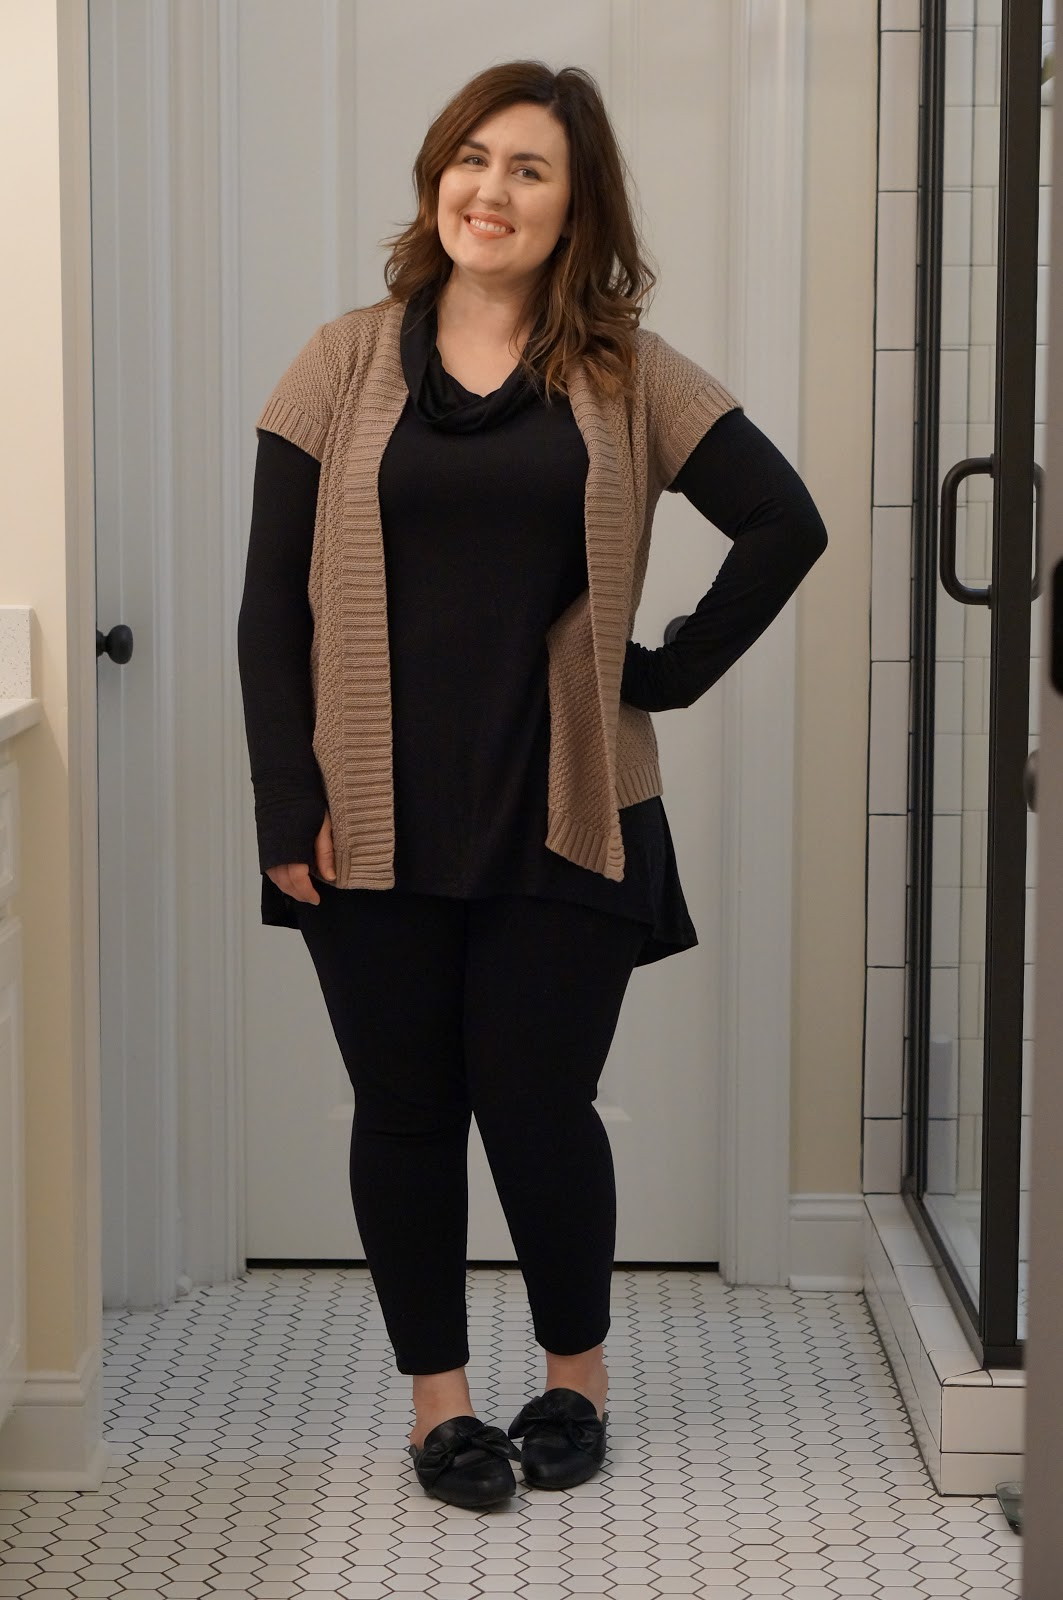 Rebecca Lately Thrifted Fashion Taupe and Black Outfit Mule Bow Flats